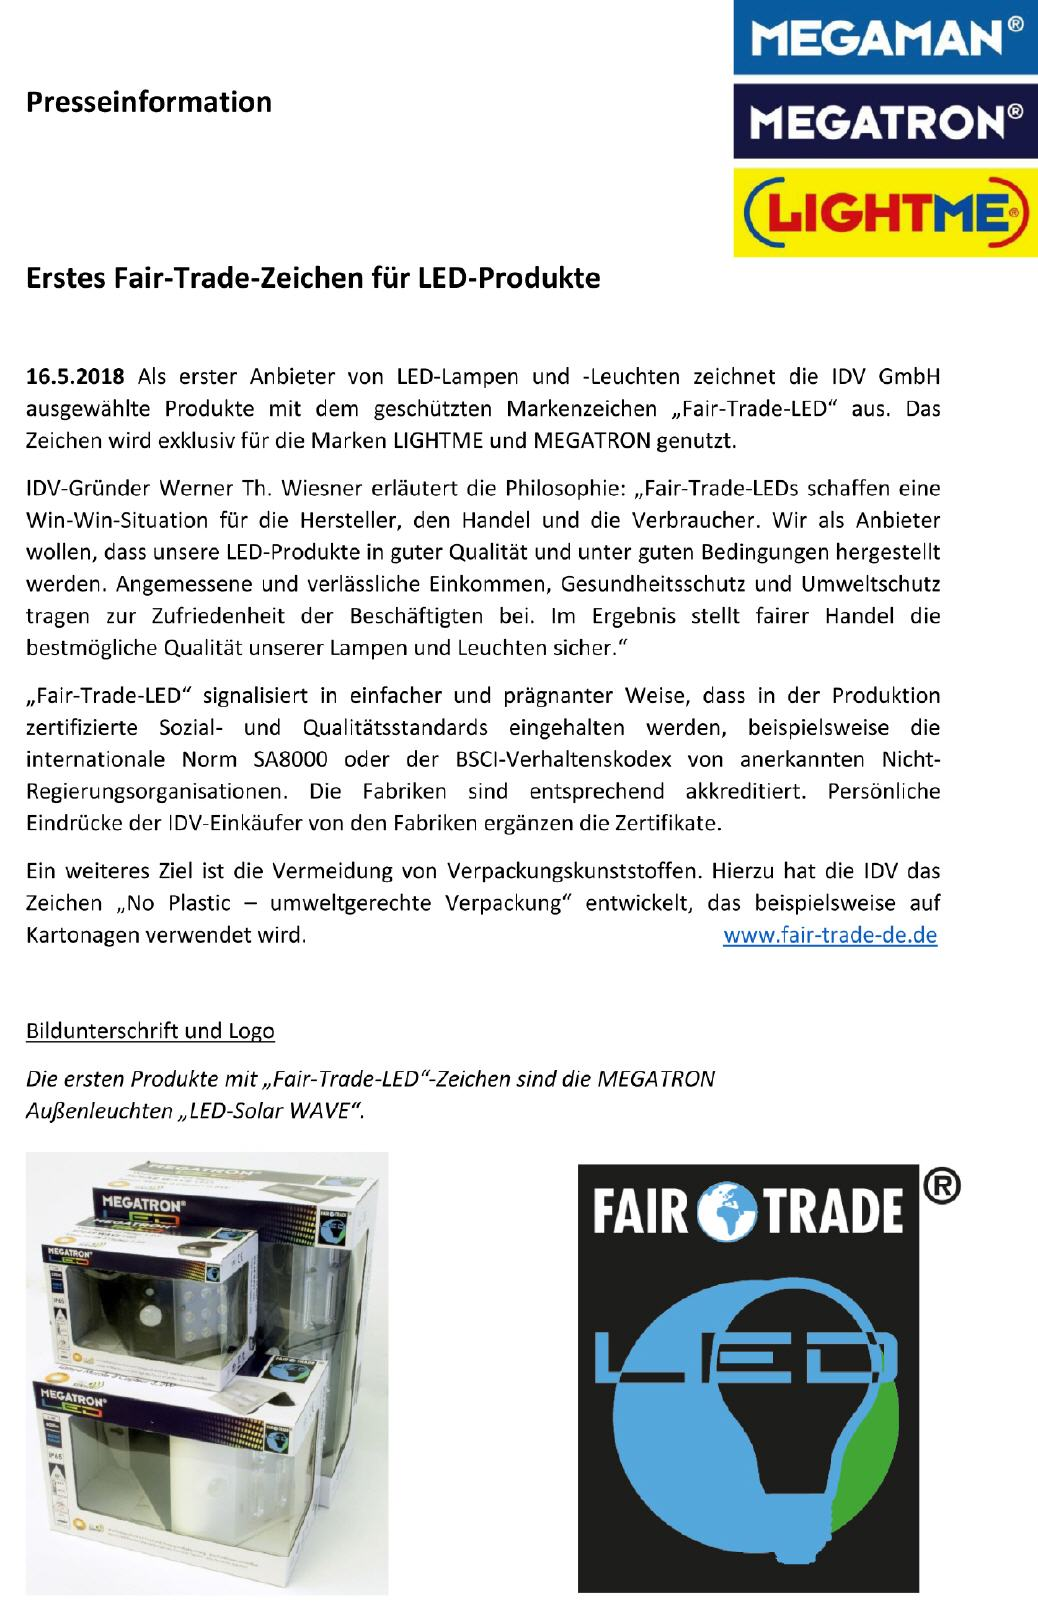 2018-05 Presseinfo zum Start von Fair-Trade-LED